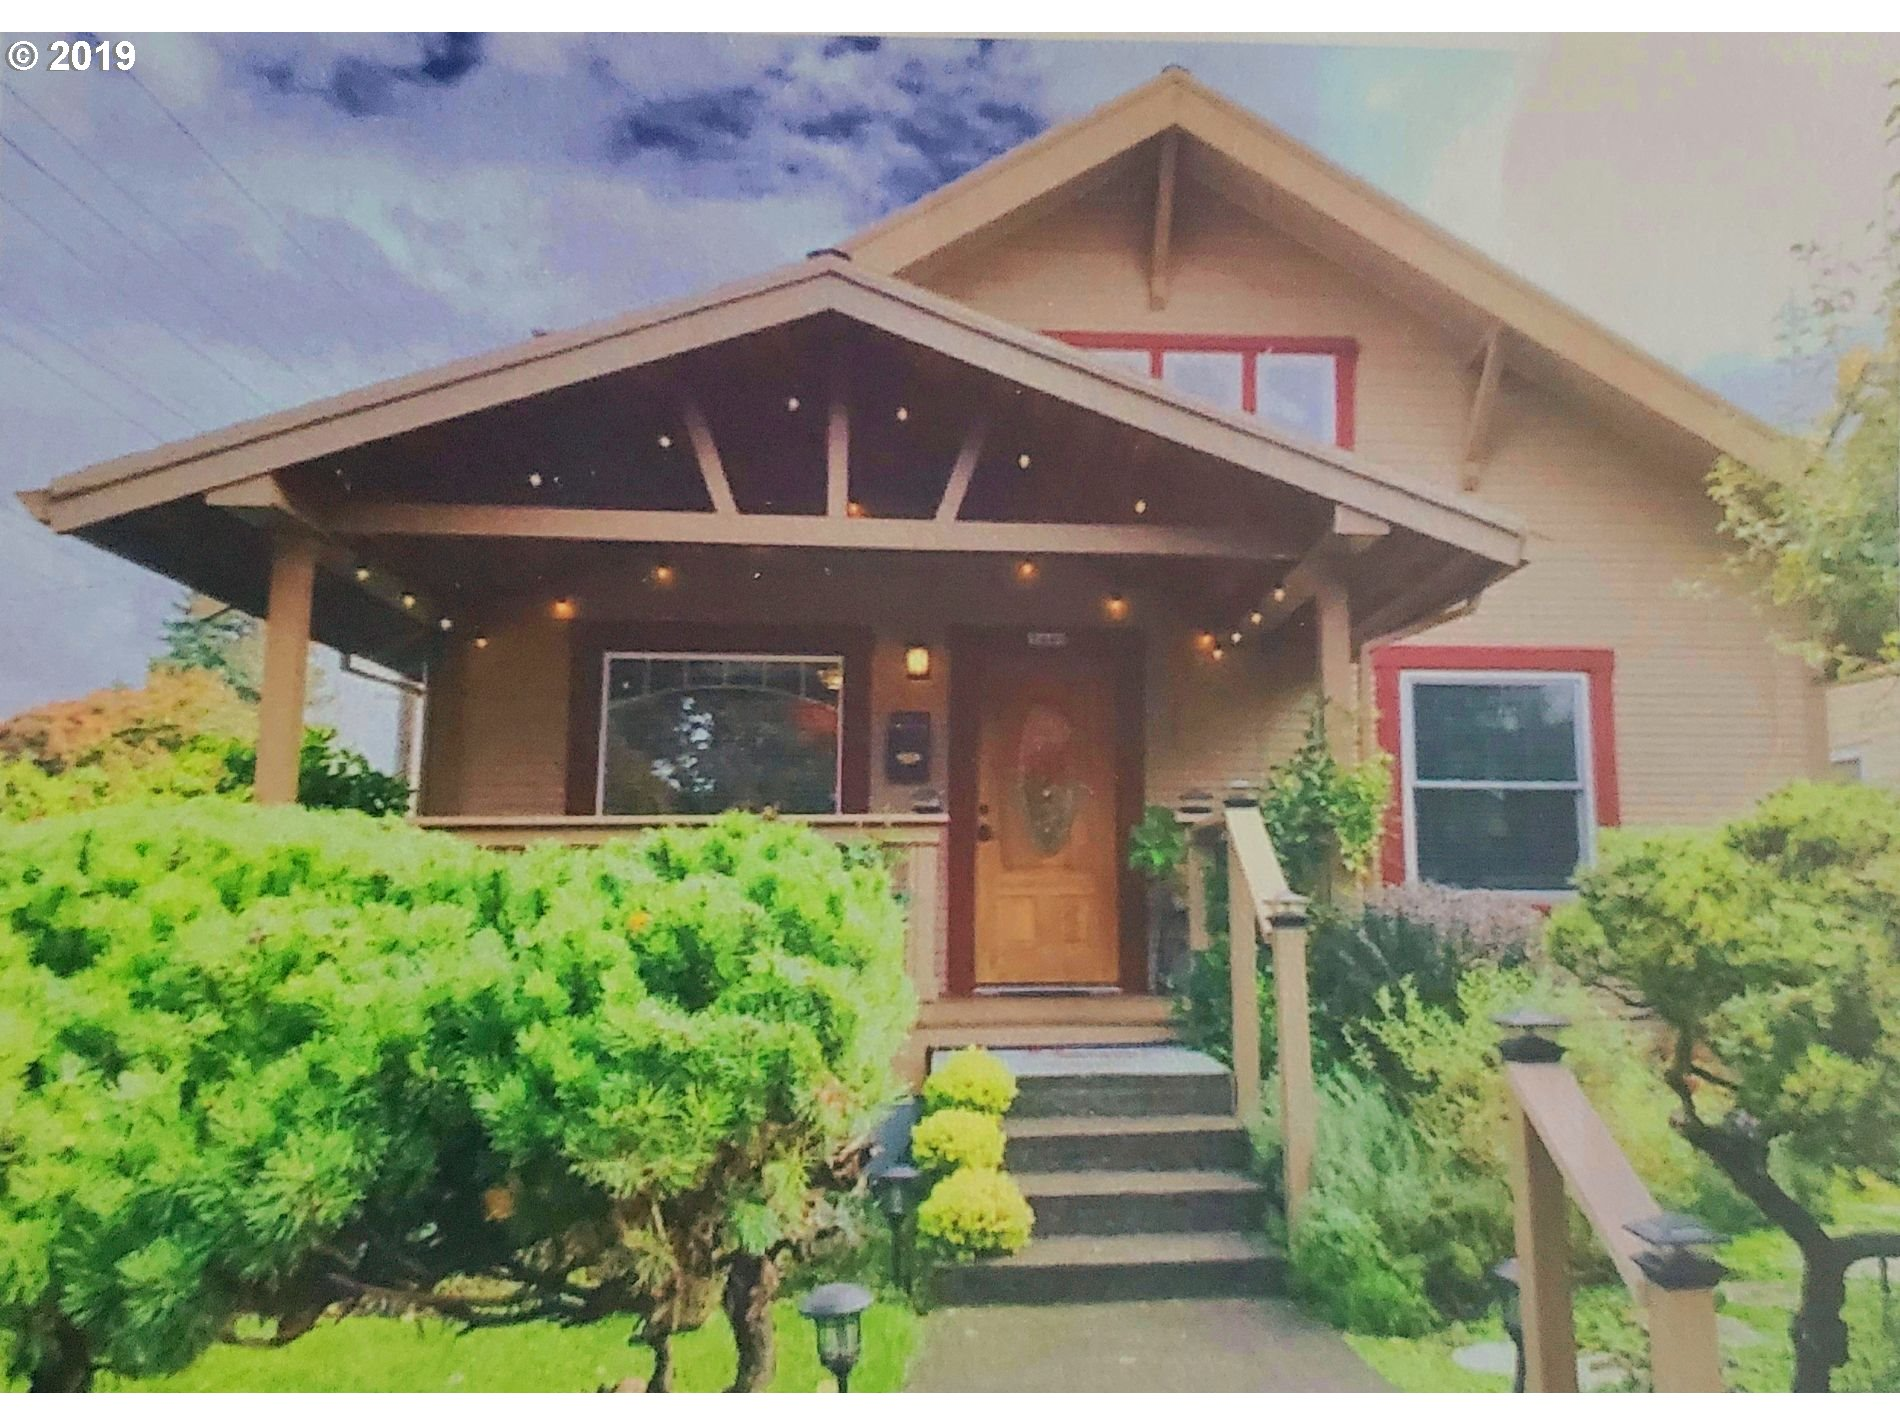 This 1915 Craftsman has been lovingly restored. The original Built-In-Hutch along with the other beautiful woodwork adds to the charm of this home. The master bedroom spans the entire upper floor and includes a full ba, walk-in closet, plus hall closet. 3 skylights give an abundance of light. 2 main floor bedrooms & full bath allows for main floor living. Finished basement with ADU possibility. Eateries, stores, parks, all a short walk.